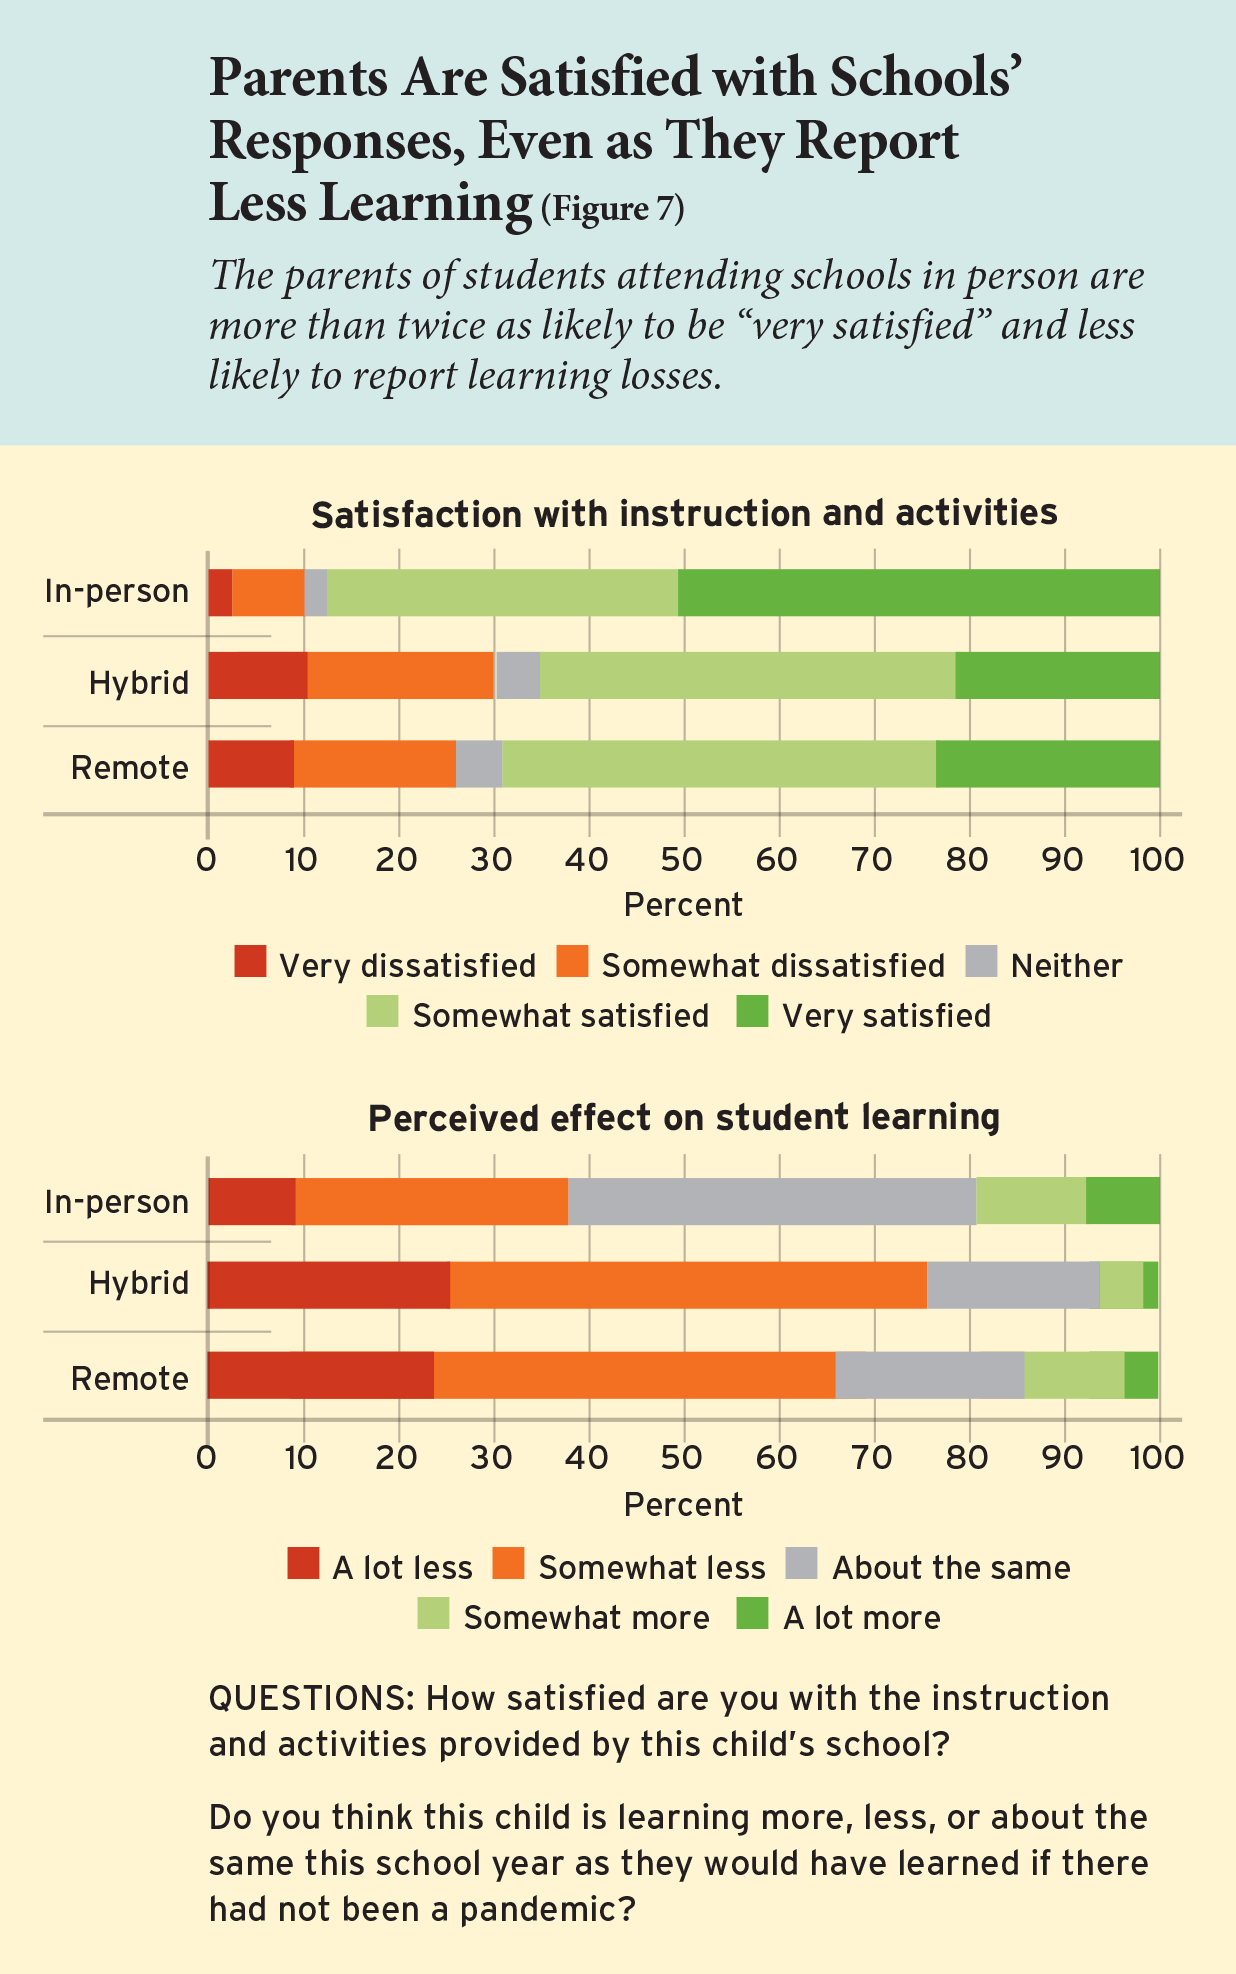 Parents Are Satisfied with Schools' Responses, Even As They Report Less Learning (Figure 7)